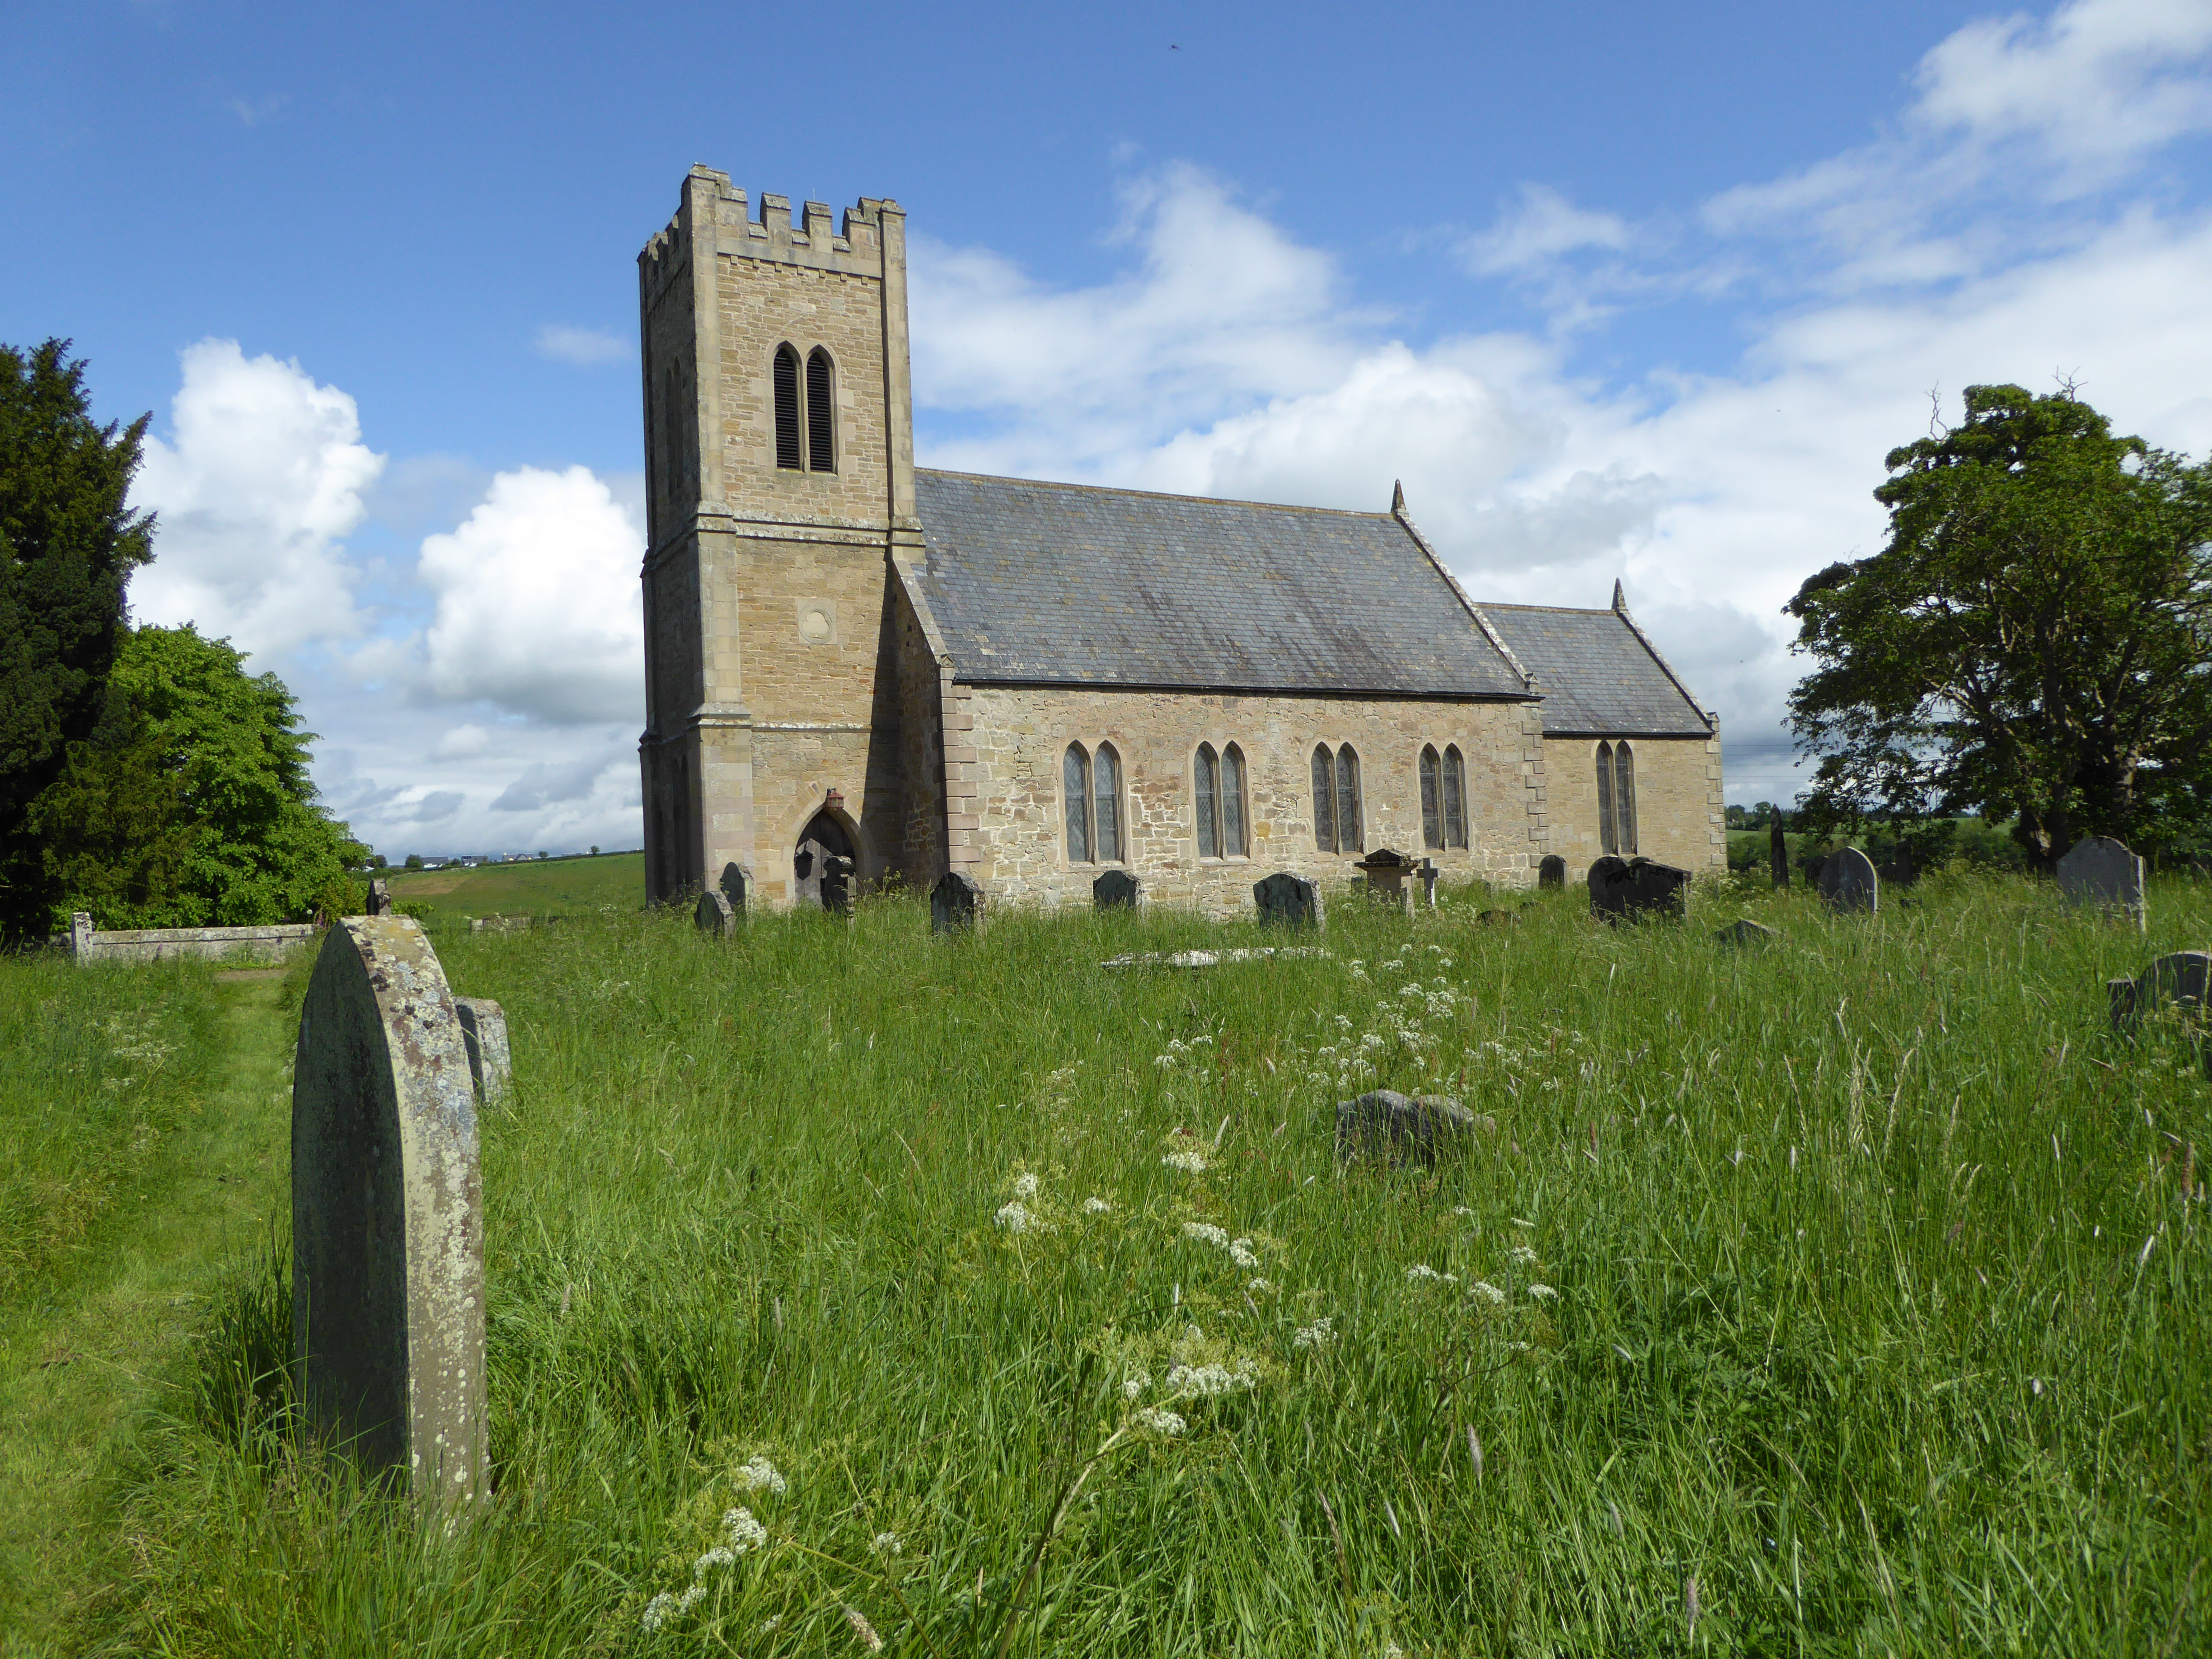 The Church of St Cuthbert, in the hamlet of Carham, is in a beautiful setting on the south bank of the River Tweed